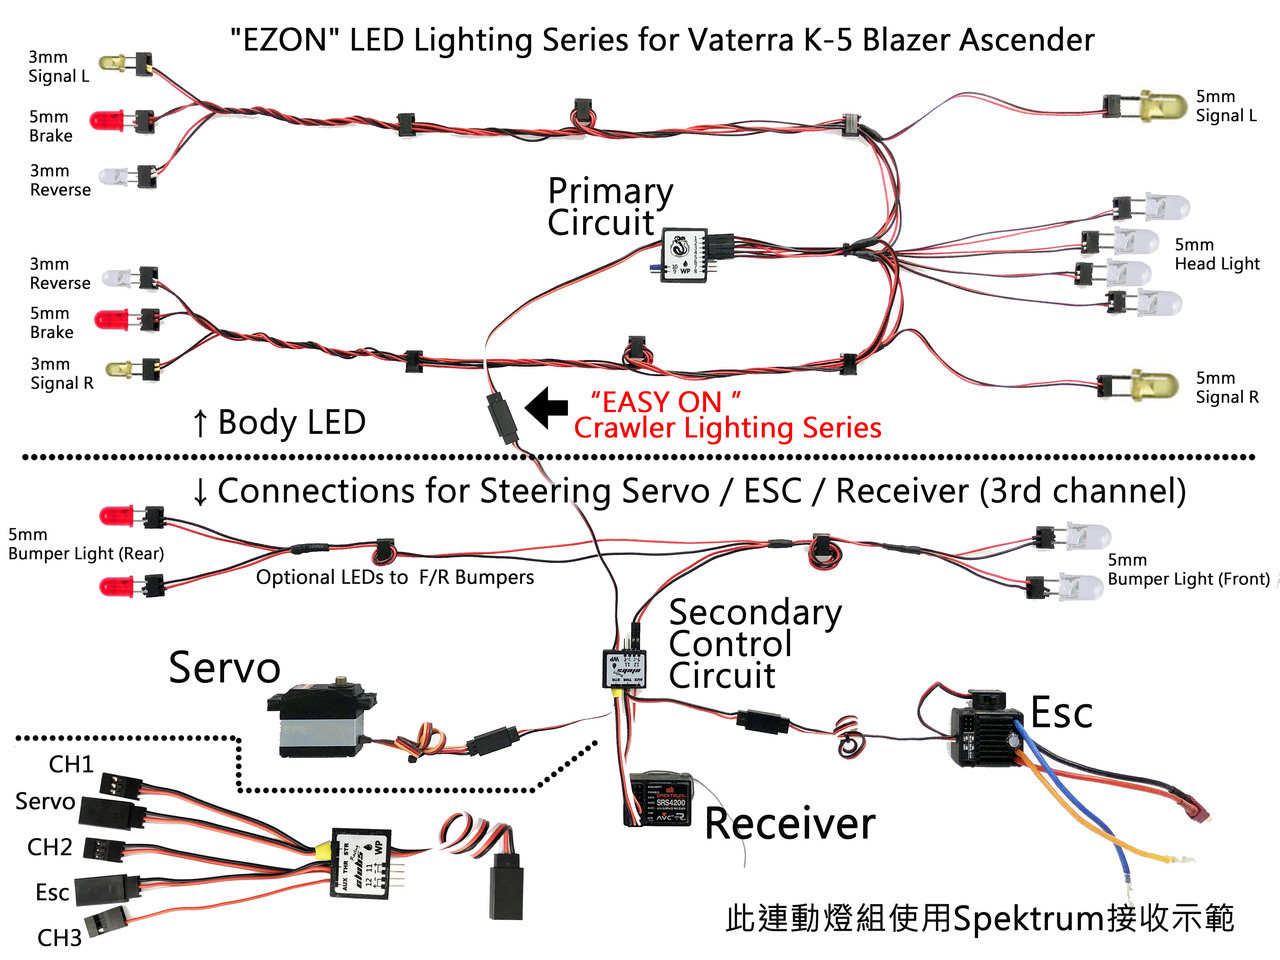 Axial Esc Wiring Diagram | Wiring Diagram on security led lighting, computer led lighting, wiring kitchen lighting, linear led lighting, wiring lighting fixtures, electrical led lighting, wood led lighting, inverter led lighting, wiring track lighting, kitchen led lighting, installing led lighting, commercial led lighting, wiring ceiling lighting, blue led lighting, filter led lighting, safety led lighting, battery led lighting, interior led lighting, industrial led lighting, cable led lighting,